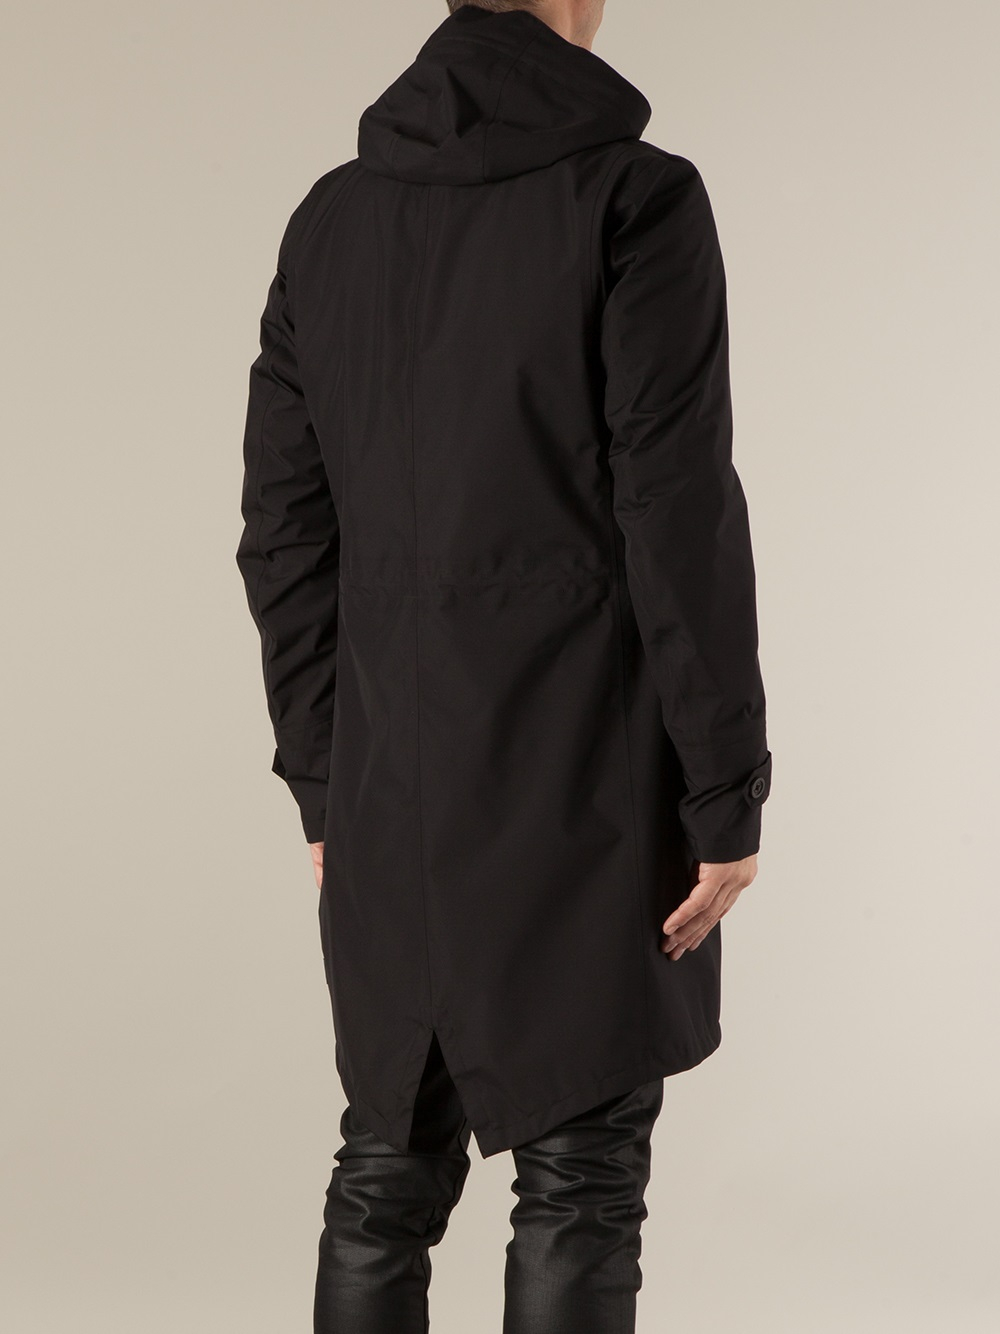 Herno Fishtail Parka in Black for Men | Lyst